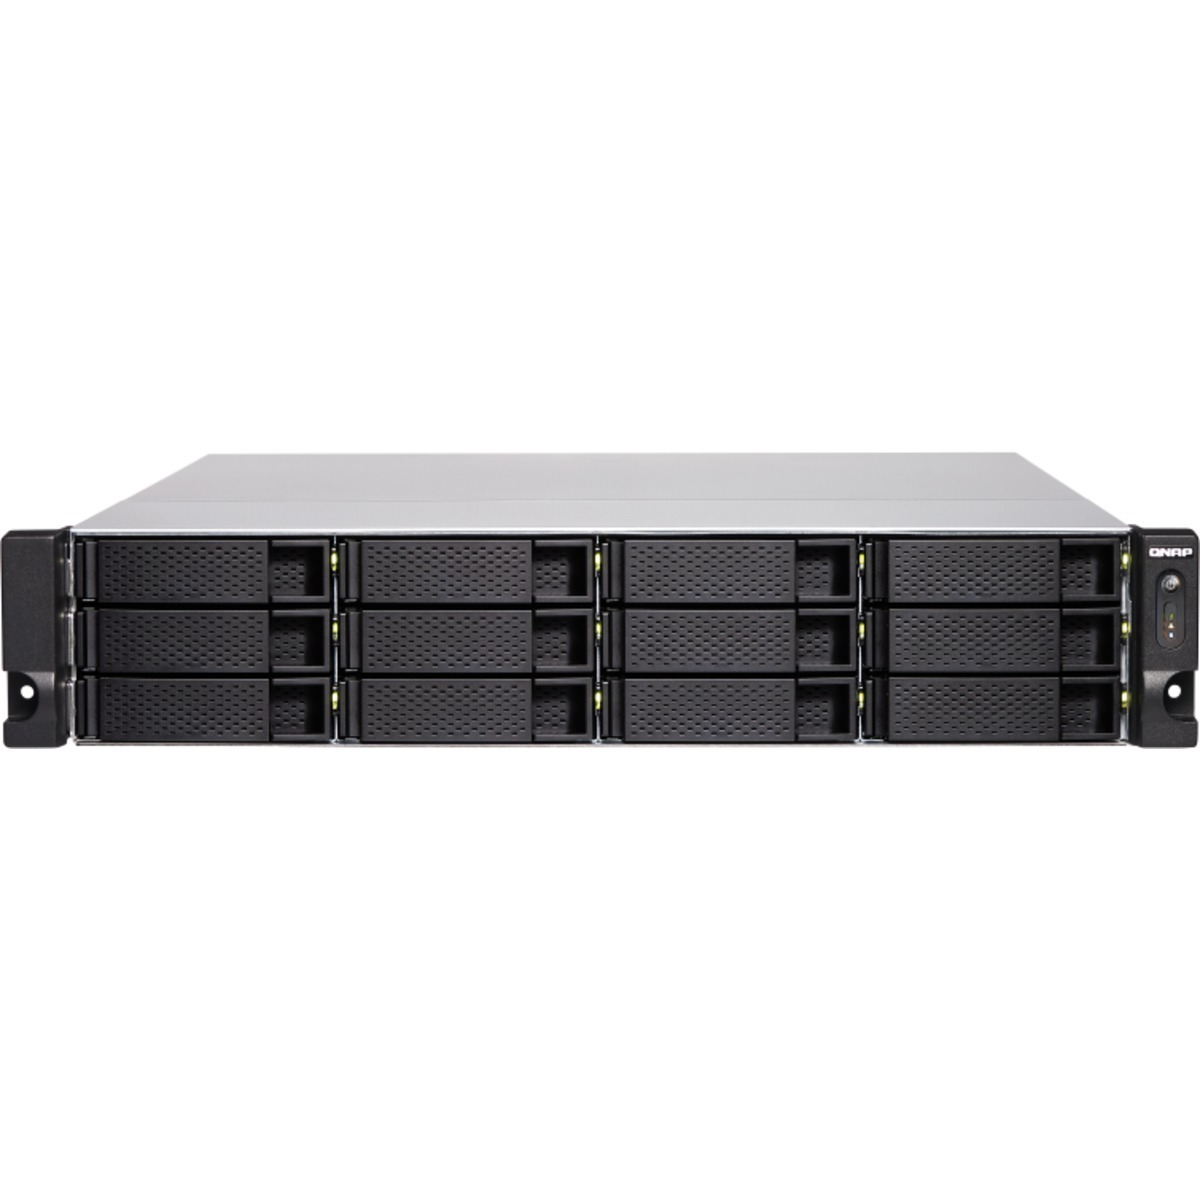 buy $5352 QNAP TS-1283XU-RP 36tb RackMount NAS - Network Attached Storage Device 12x3000gb Toshiba Desktop Series DT01ACA300 3.5 7200rpm SATA 6Gb/s HDD CONSUMER Class Drives Installed - Burn-In Tested - nas headquarters buy network attached storage server device das new raid-5 free shipping usa holiday new year clearance sale TS-1283XU-RP